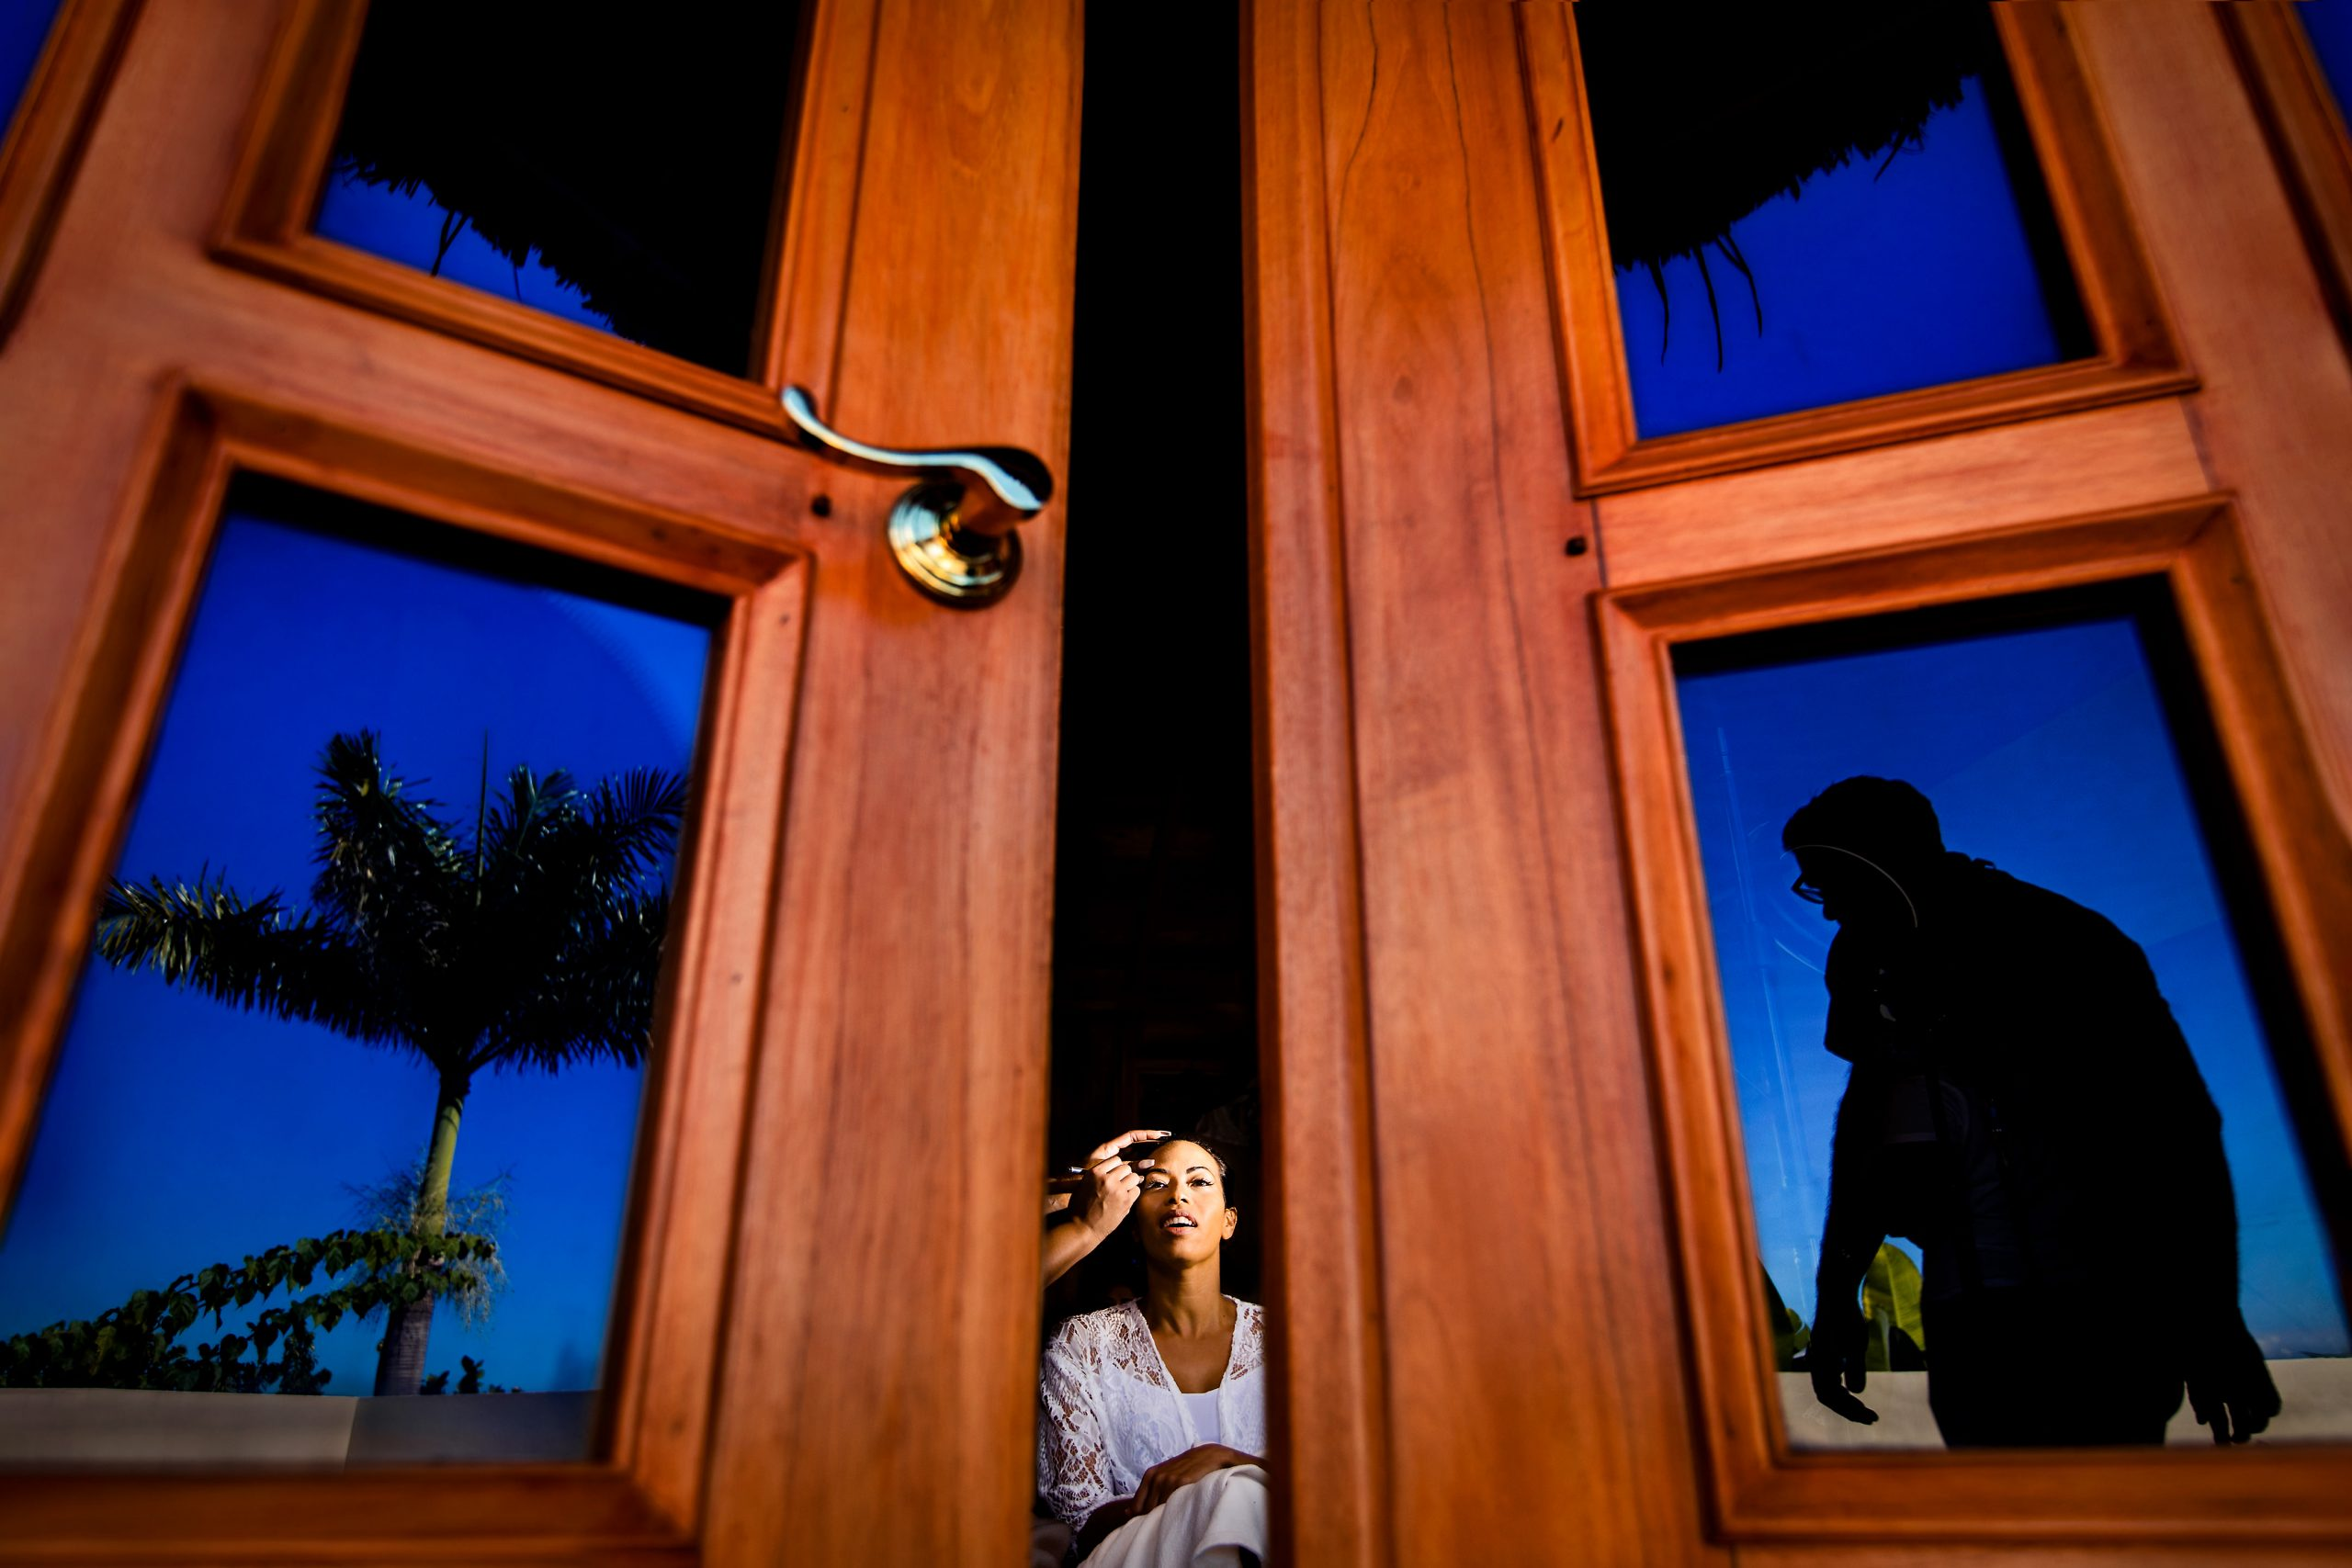 Groom getting her makeup done is seen in the crack of a pair of wooden doors.